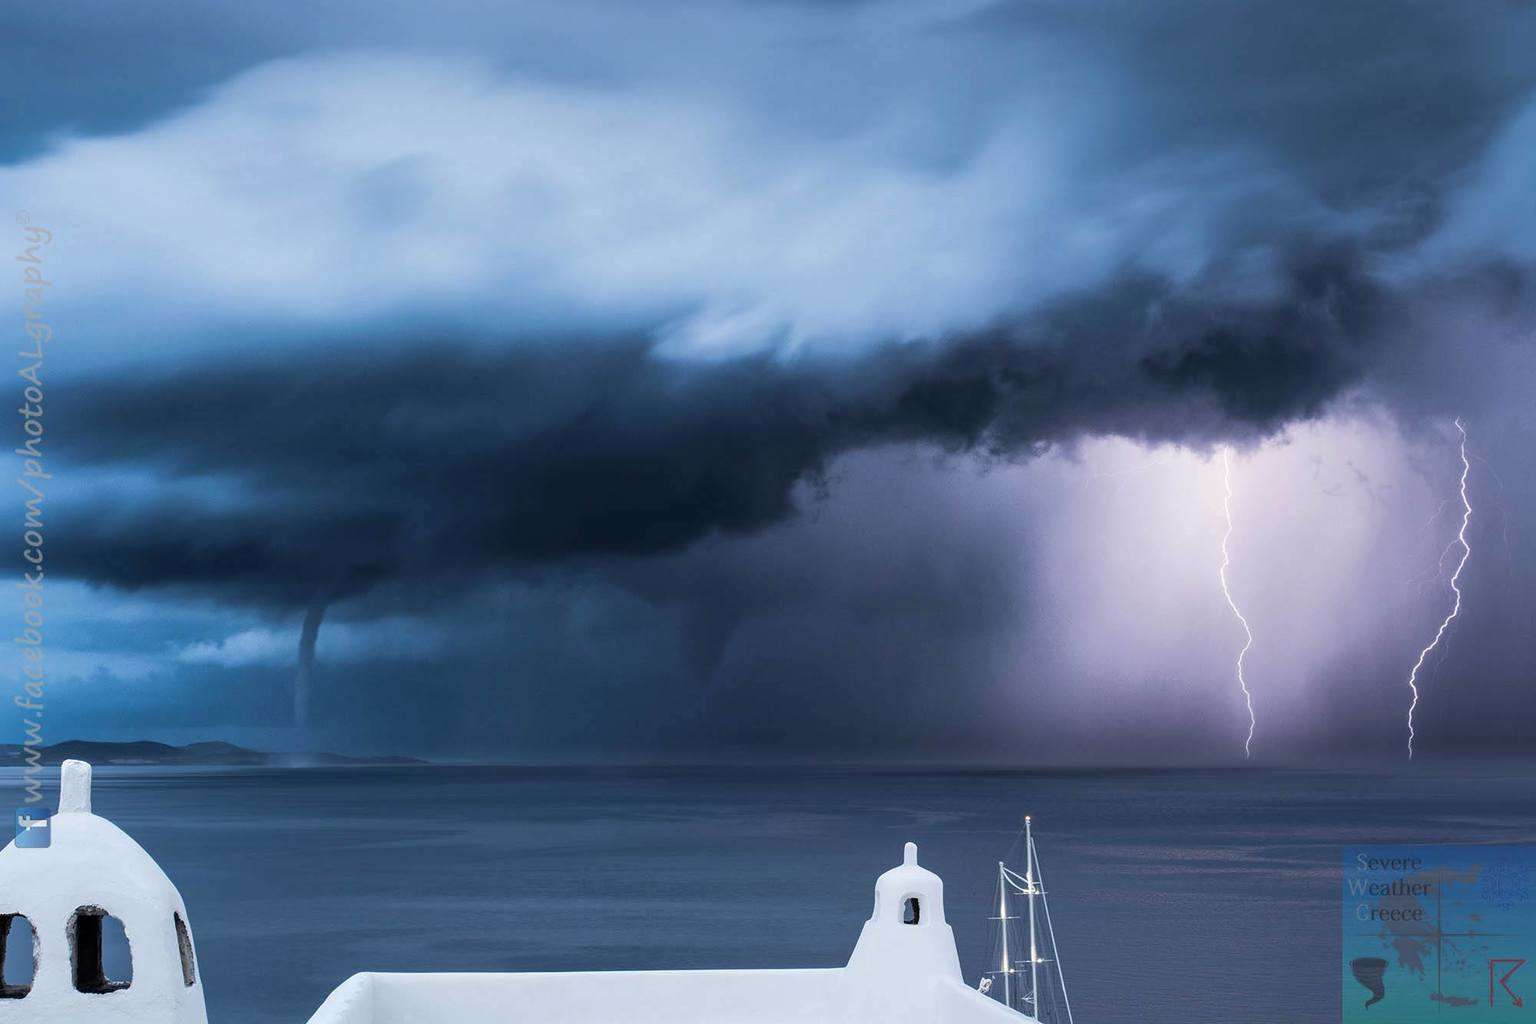 Twin Waterspouts along with lightning in Mykonos island - Greece early this morning!